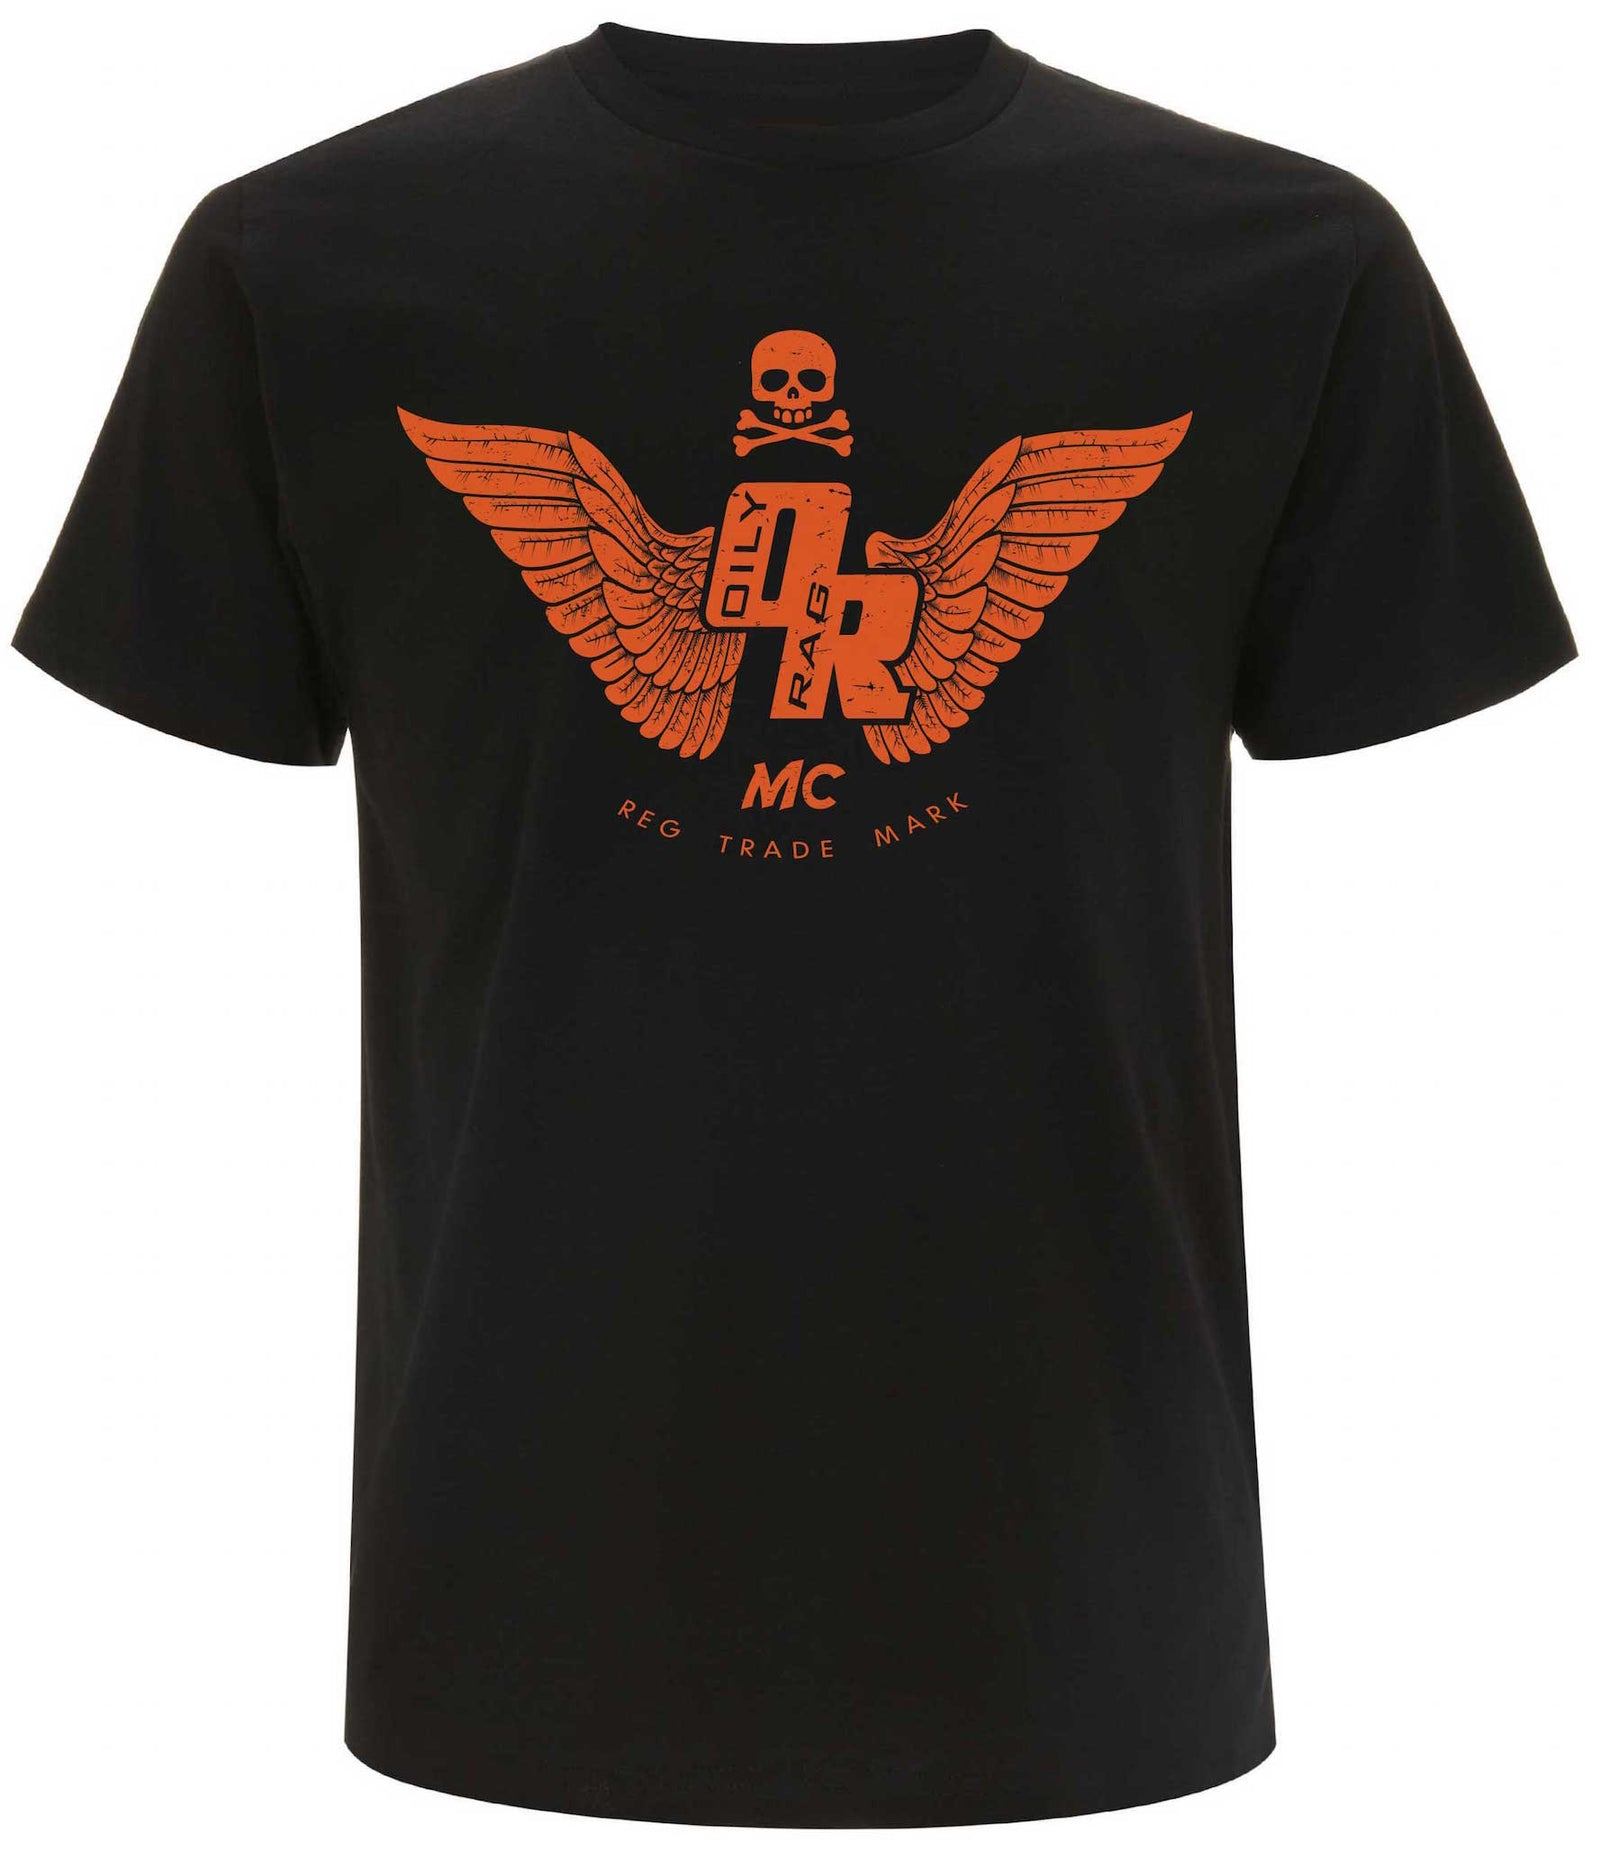 Oily Rag Clothing Motorcycle Club retro T'shirt